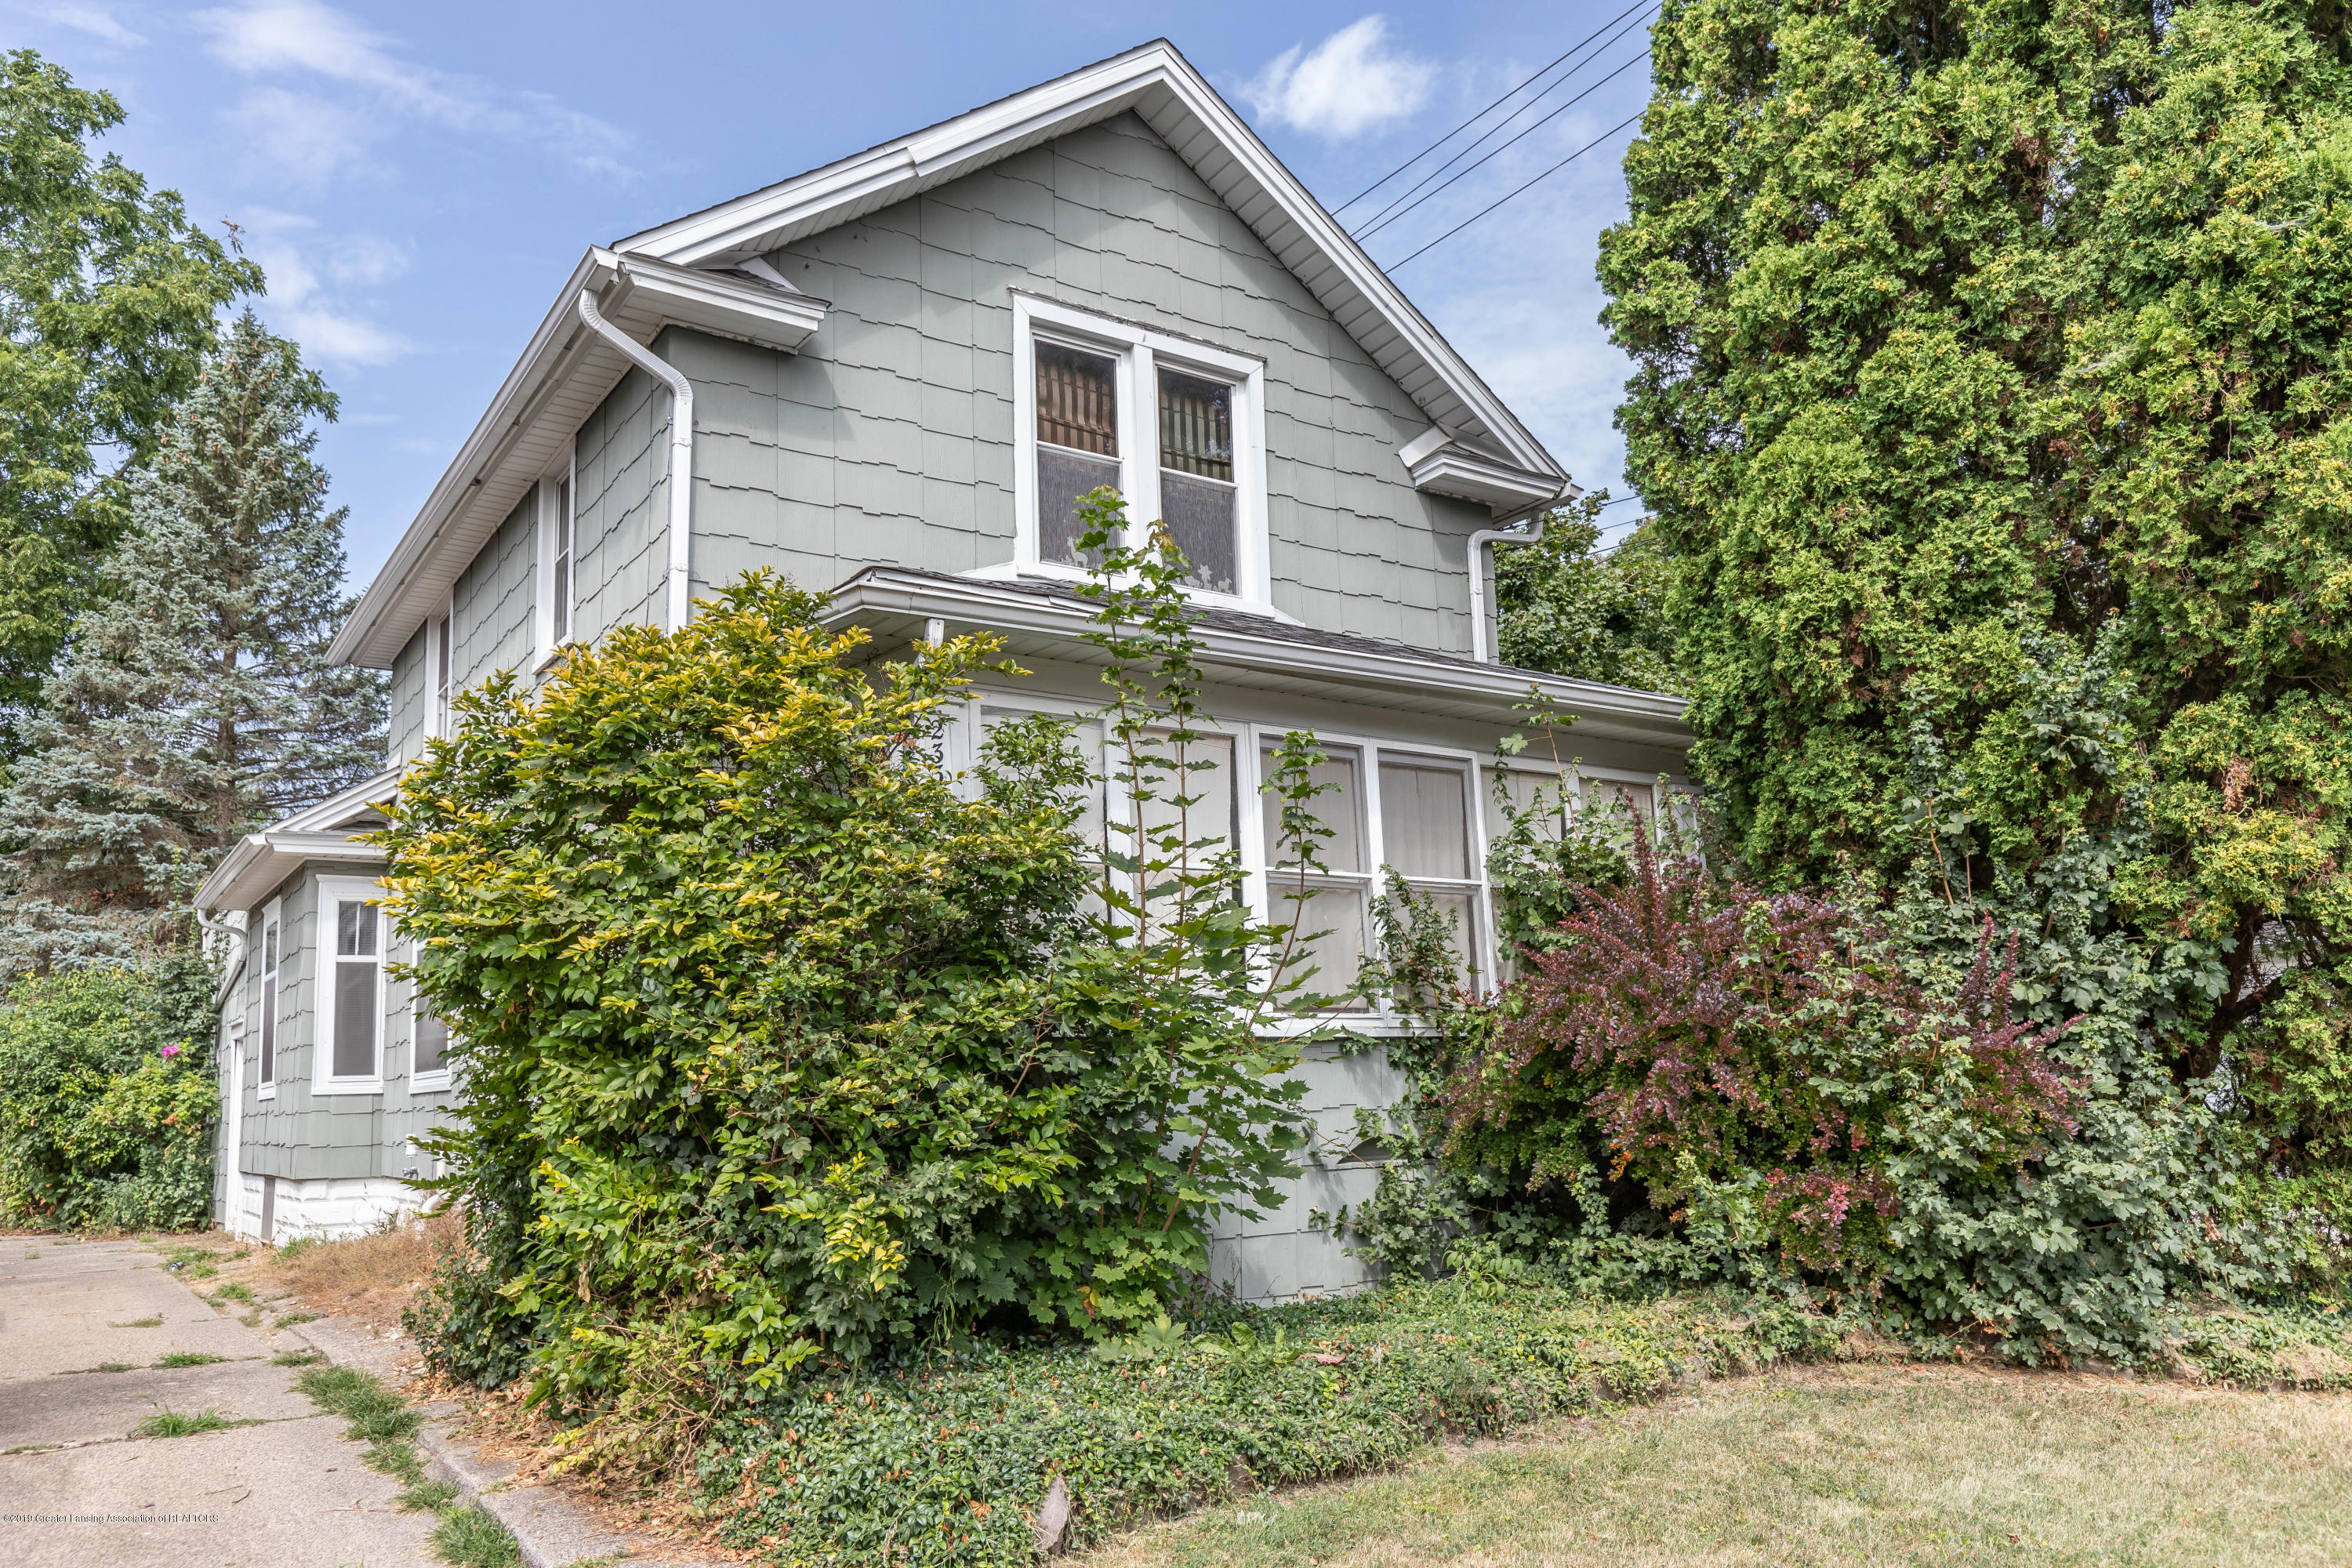 233 N Magnolia Ave - nmagfront2 (1 of 1) - 1